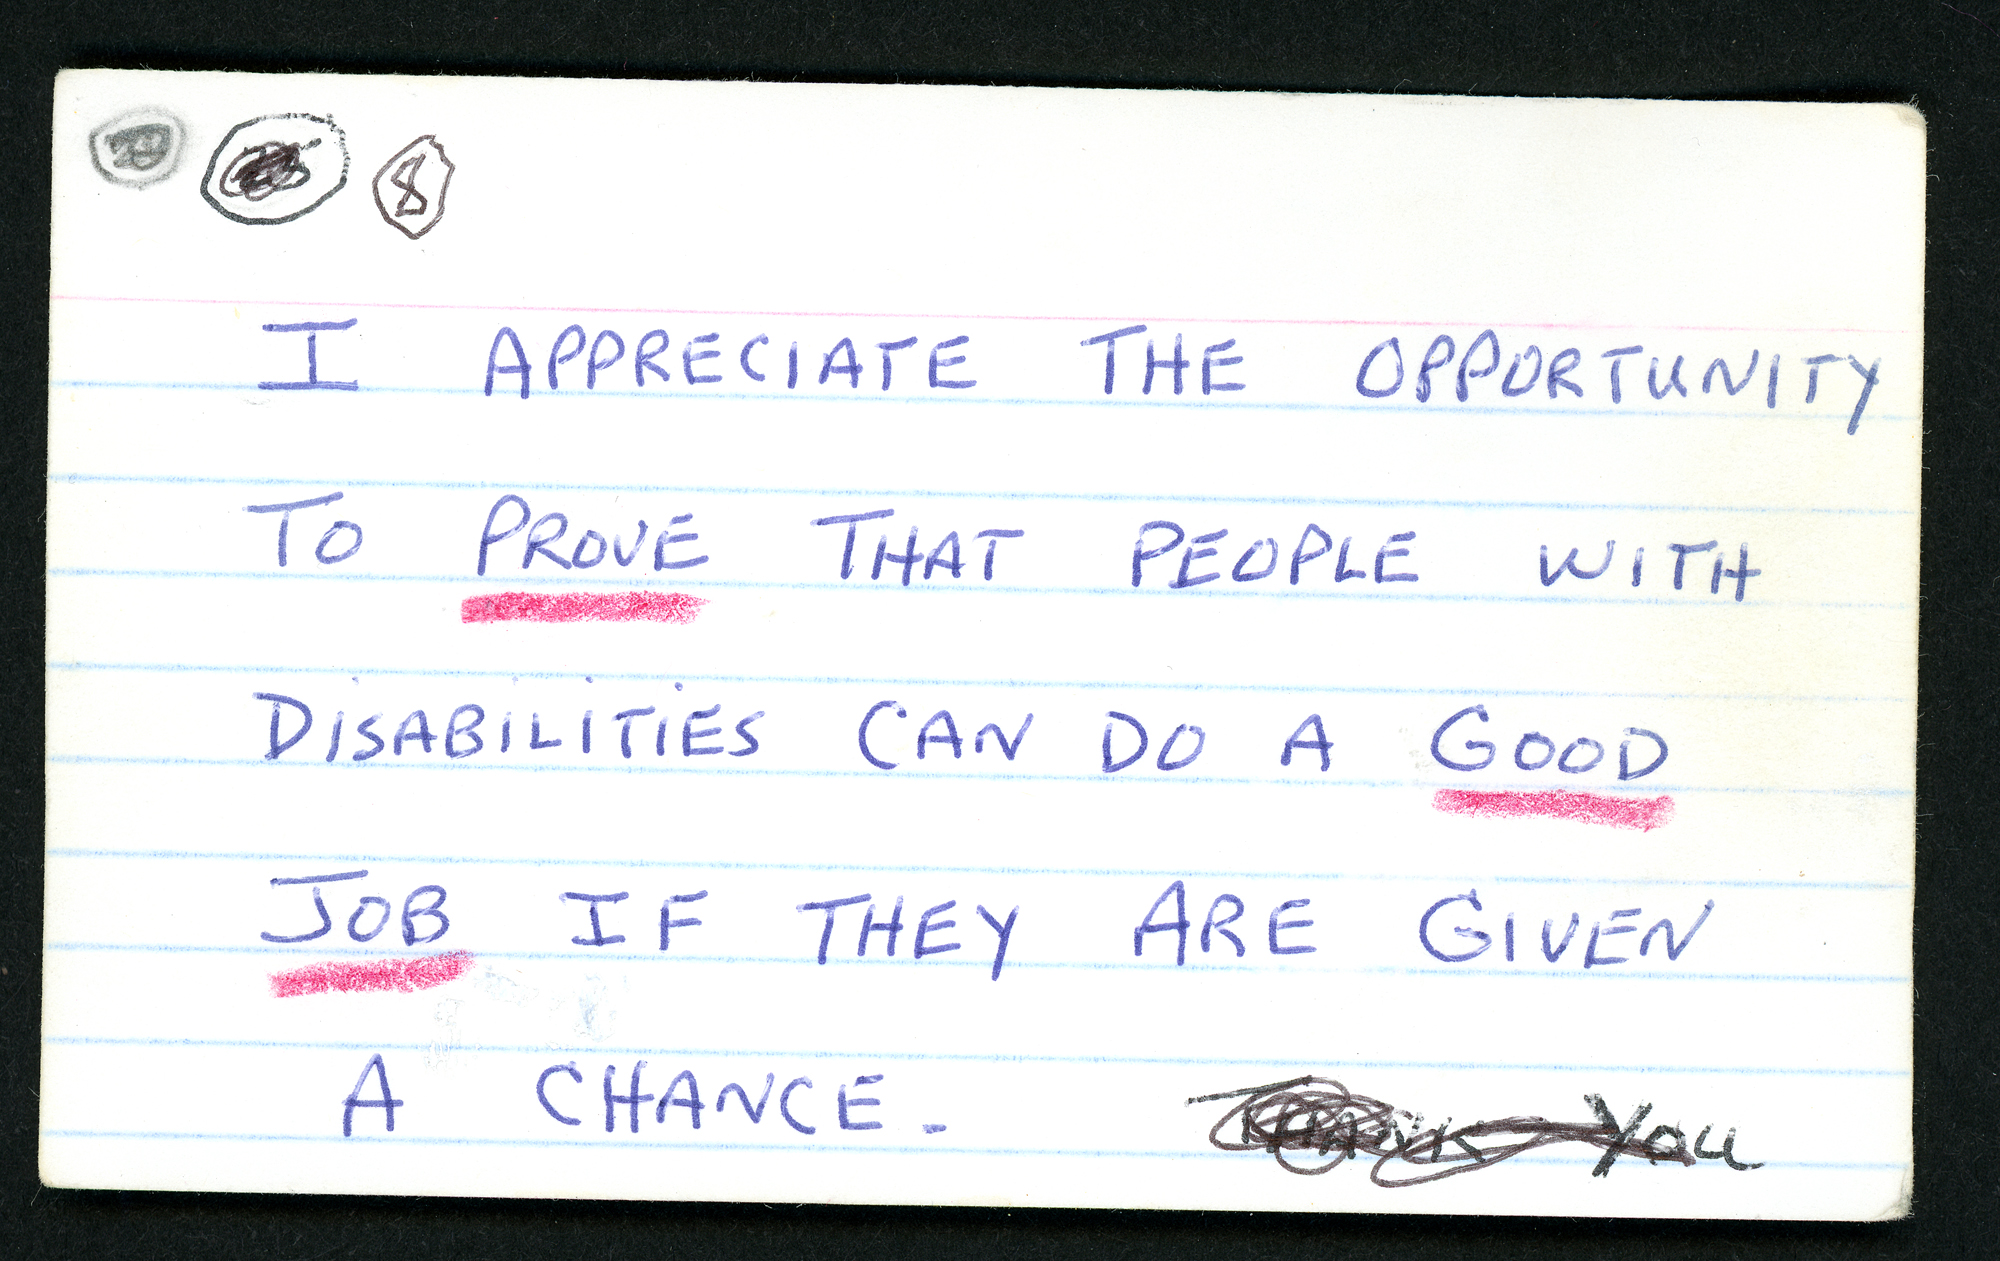 """I appreciate the opportunity to prove that people with disabilities can do a good job if they are given the chance"" handwritten on notecard."